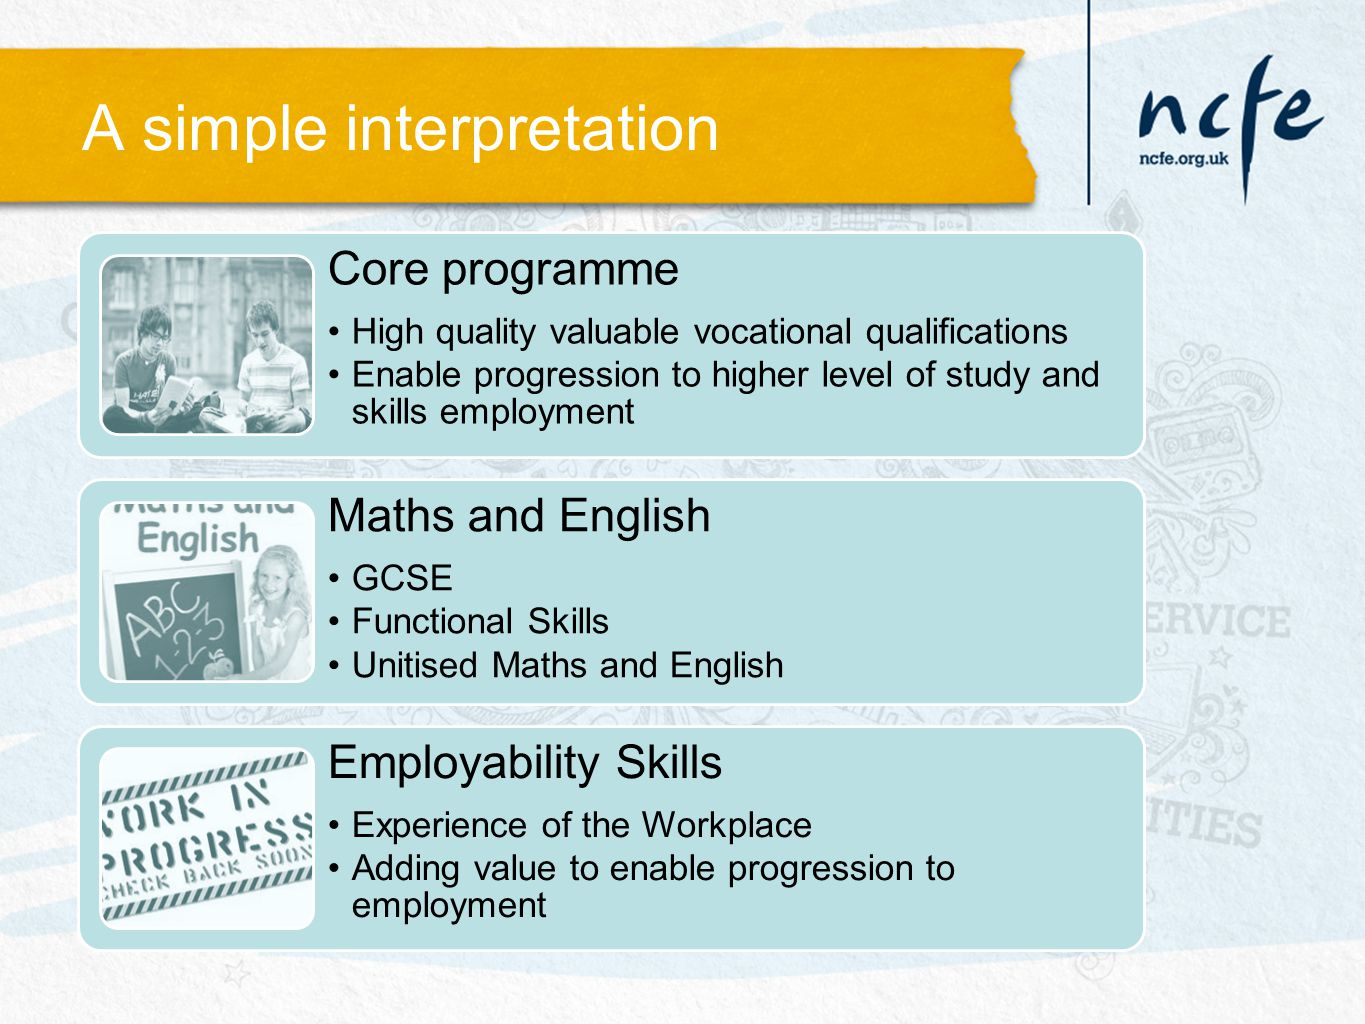 A simple interpretation Core programme High quality valuable vocational qualifications Enable progression to higher level of study and skills employment Maths and English GCSE Functional Skills Unitised Maths and English Employability Skills Experience of the Workplace Adding value to enable progression to employment